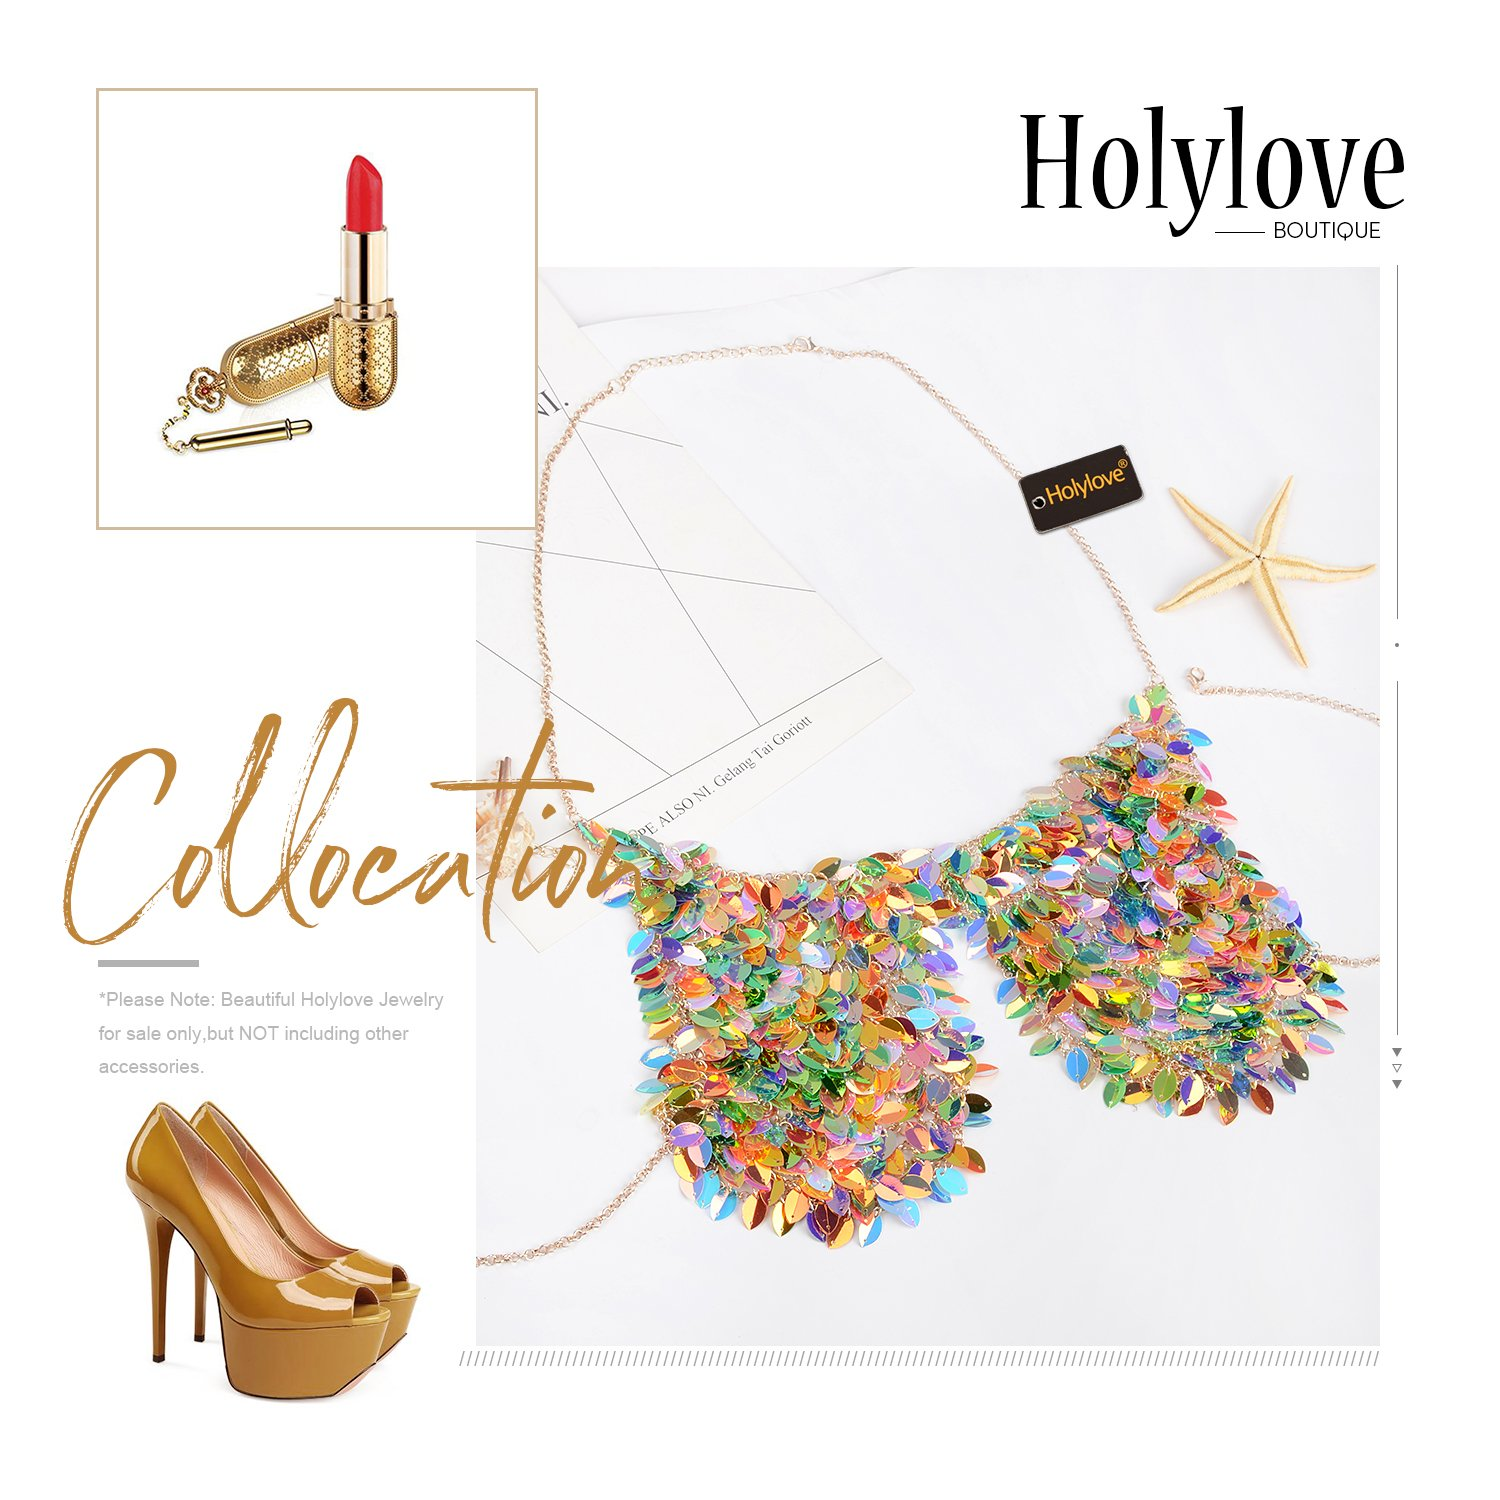 Holylove Paillette Sequin Bra Tops Body Chain Necklace Jewelry Colorful Sexy Charm for Women Lady Summer Beach Hawaiian Style Bikini Beachwear - HLBN5 Colorful by Holylove (Image #7)